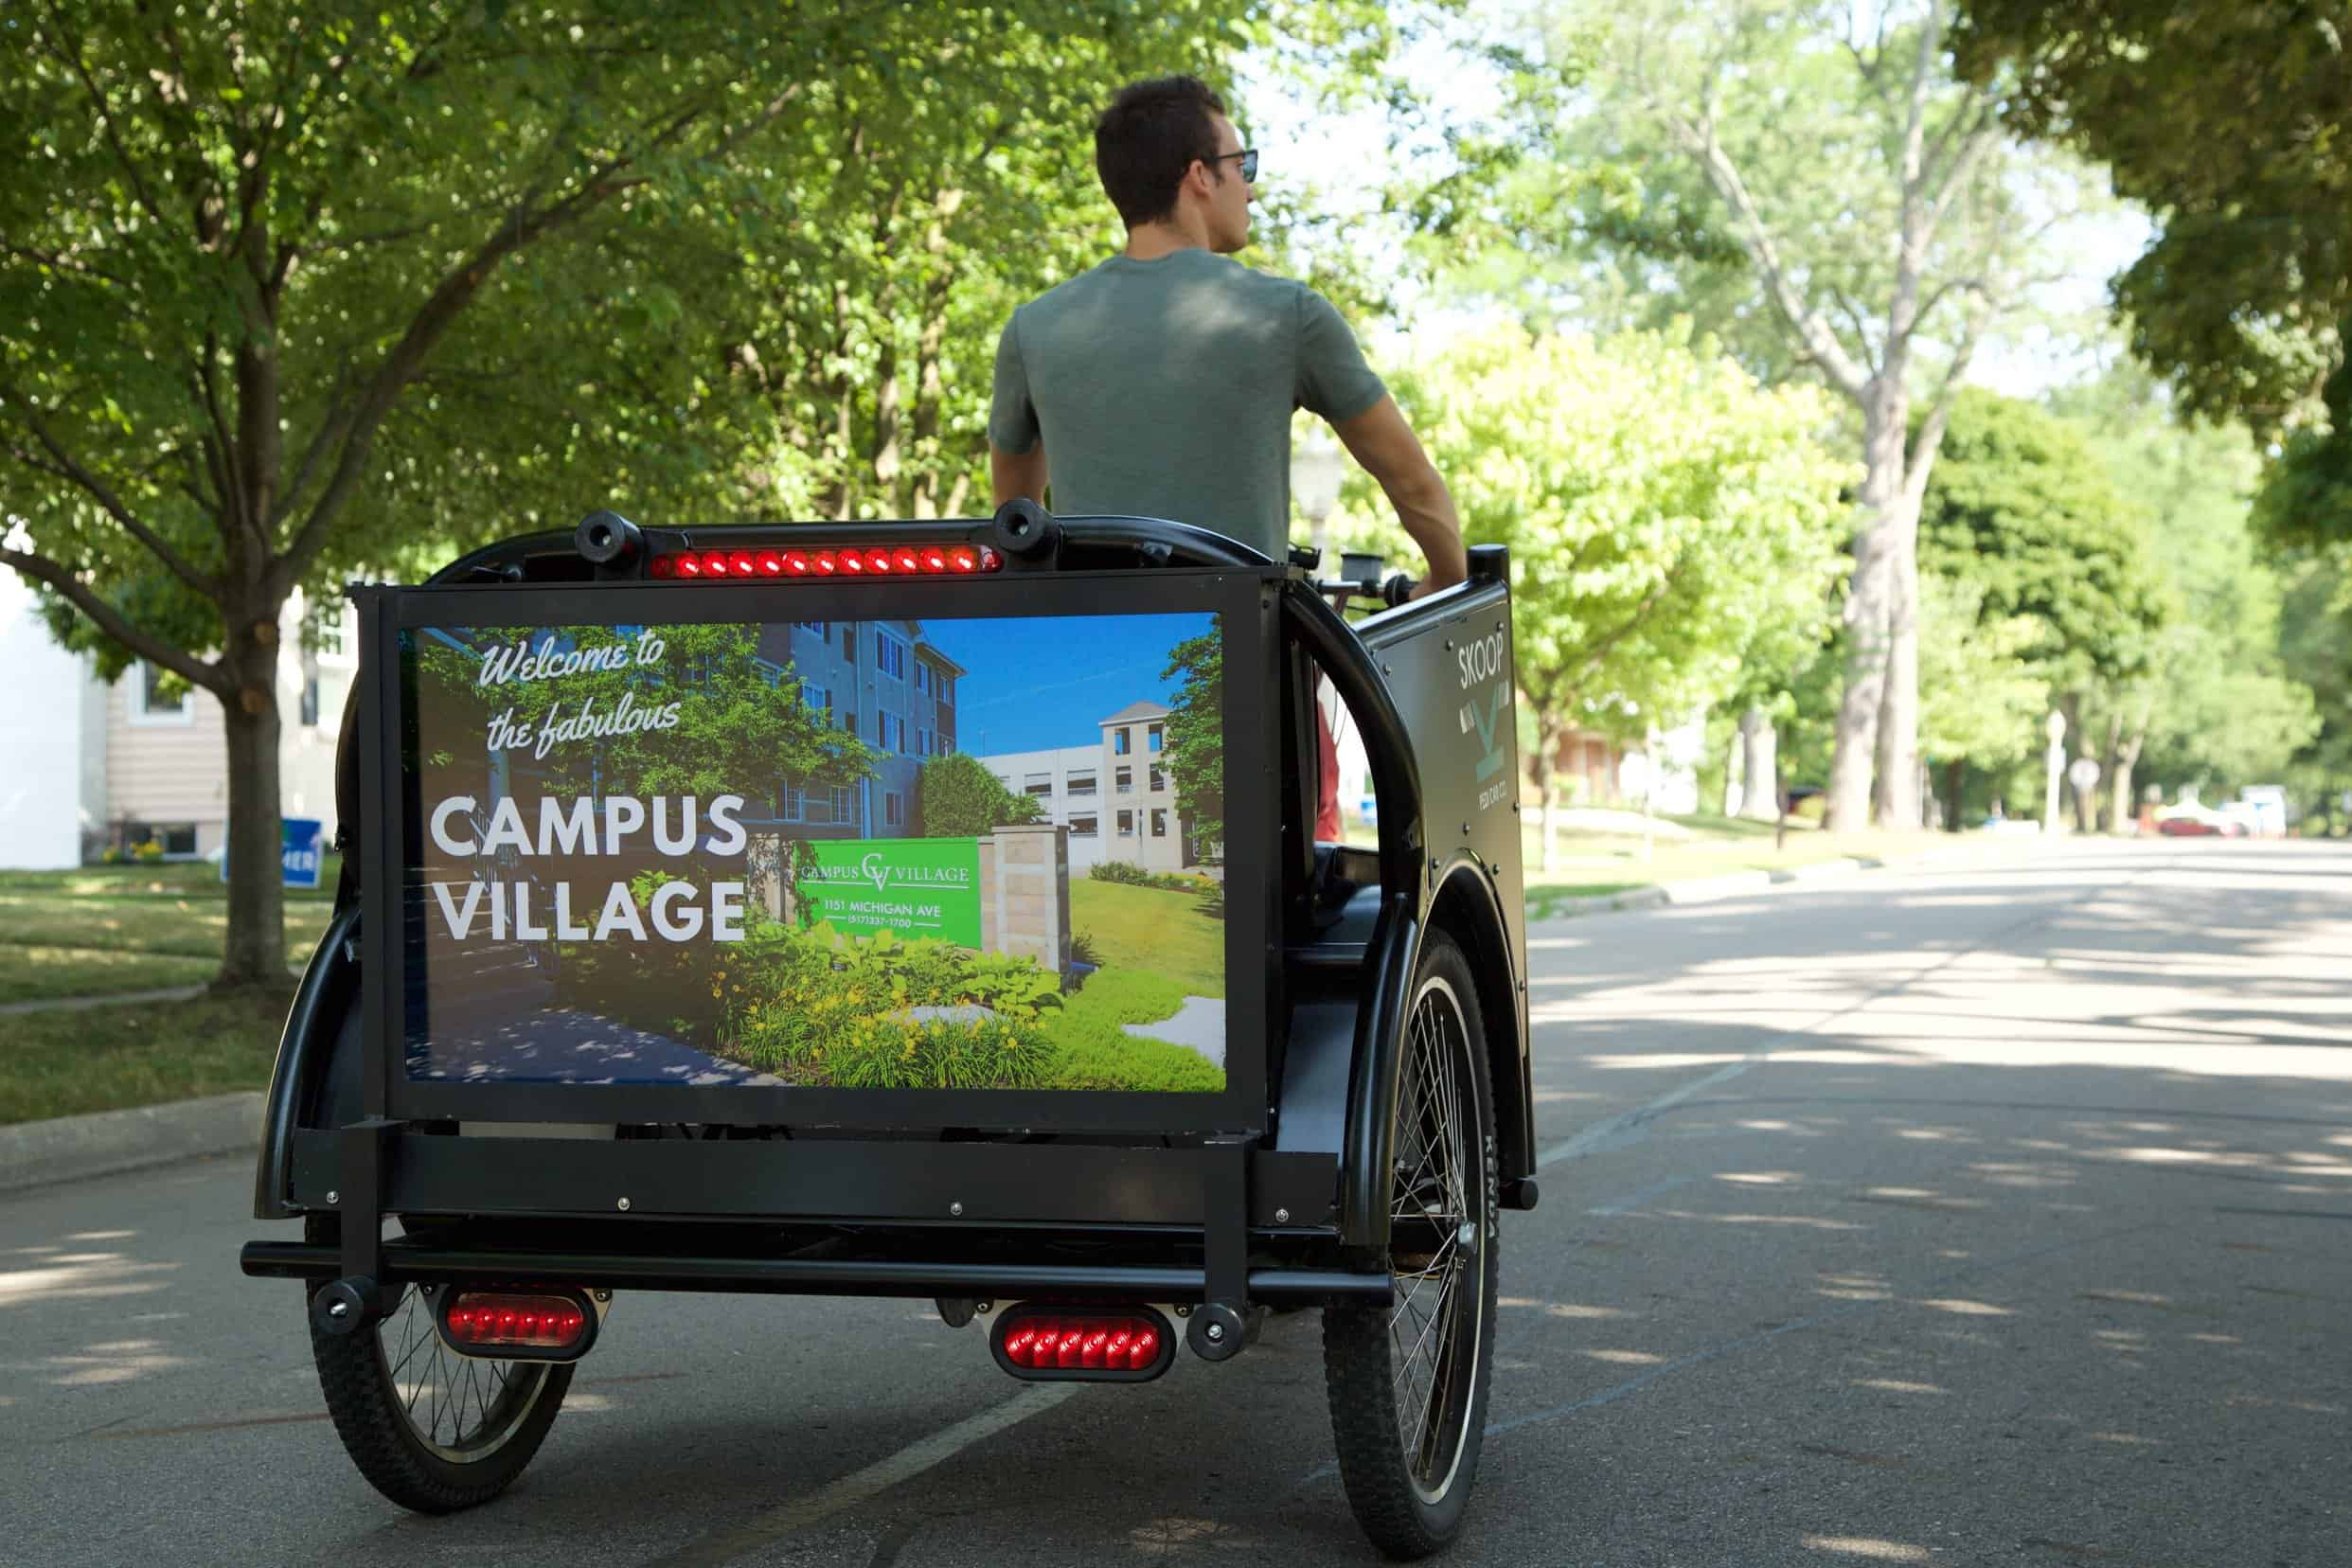 Man driving rickshaw on college campus with advertisement attached on back